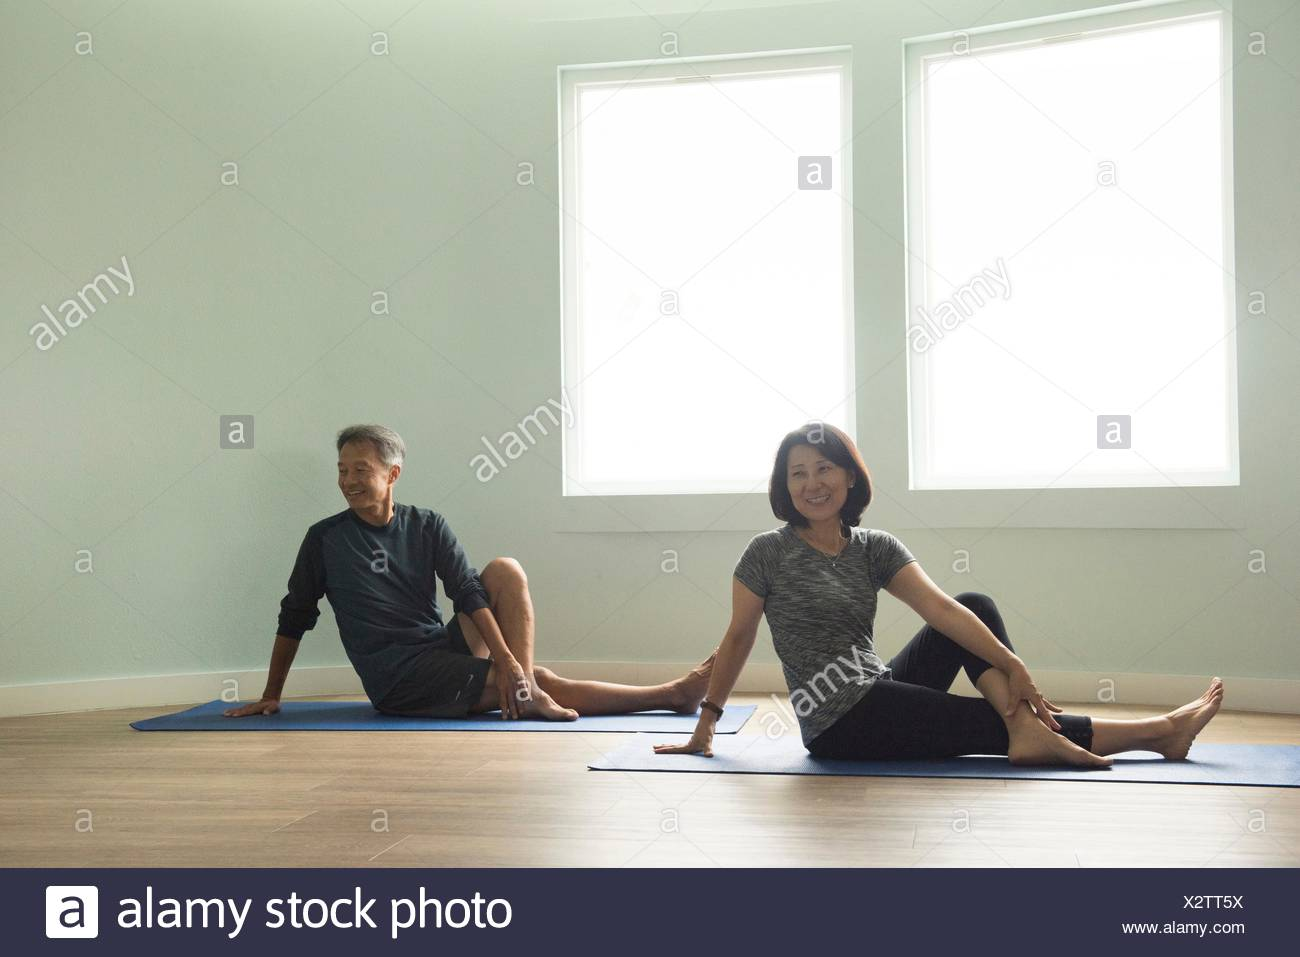 Mature couple sitting on yoga mat leaning on hand, legs crossed looking away smiling - Stock Image